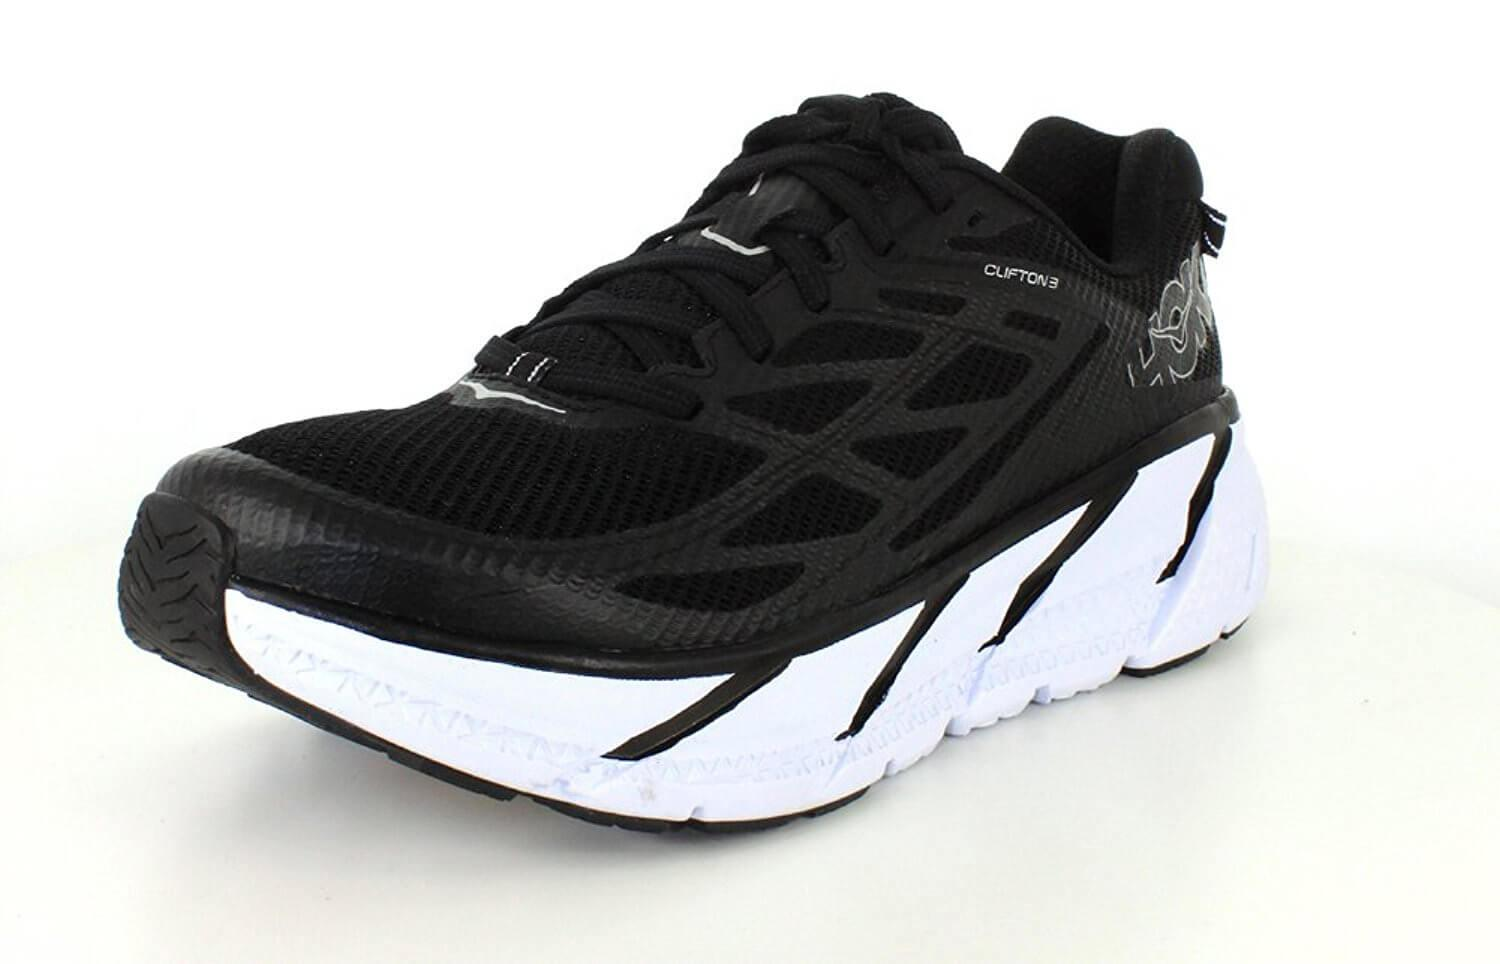 f2e5cc87922d6 Best Running Shoes for Shin Splints Reviewed in 2019